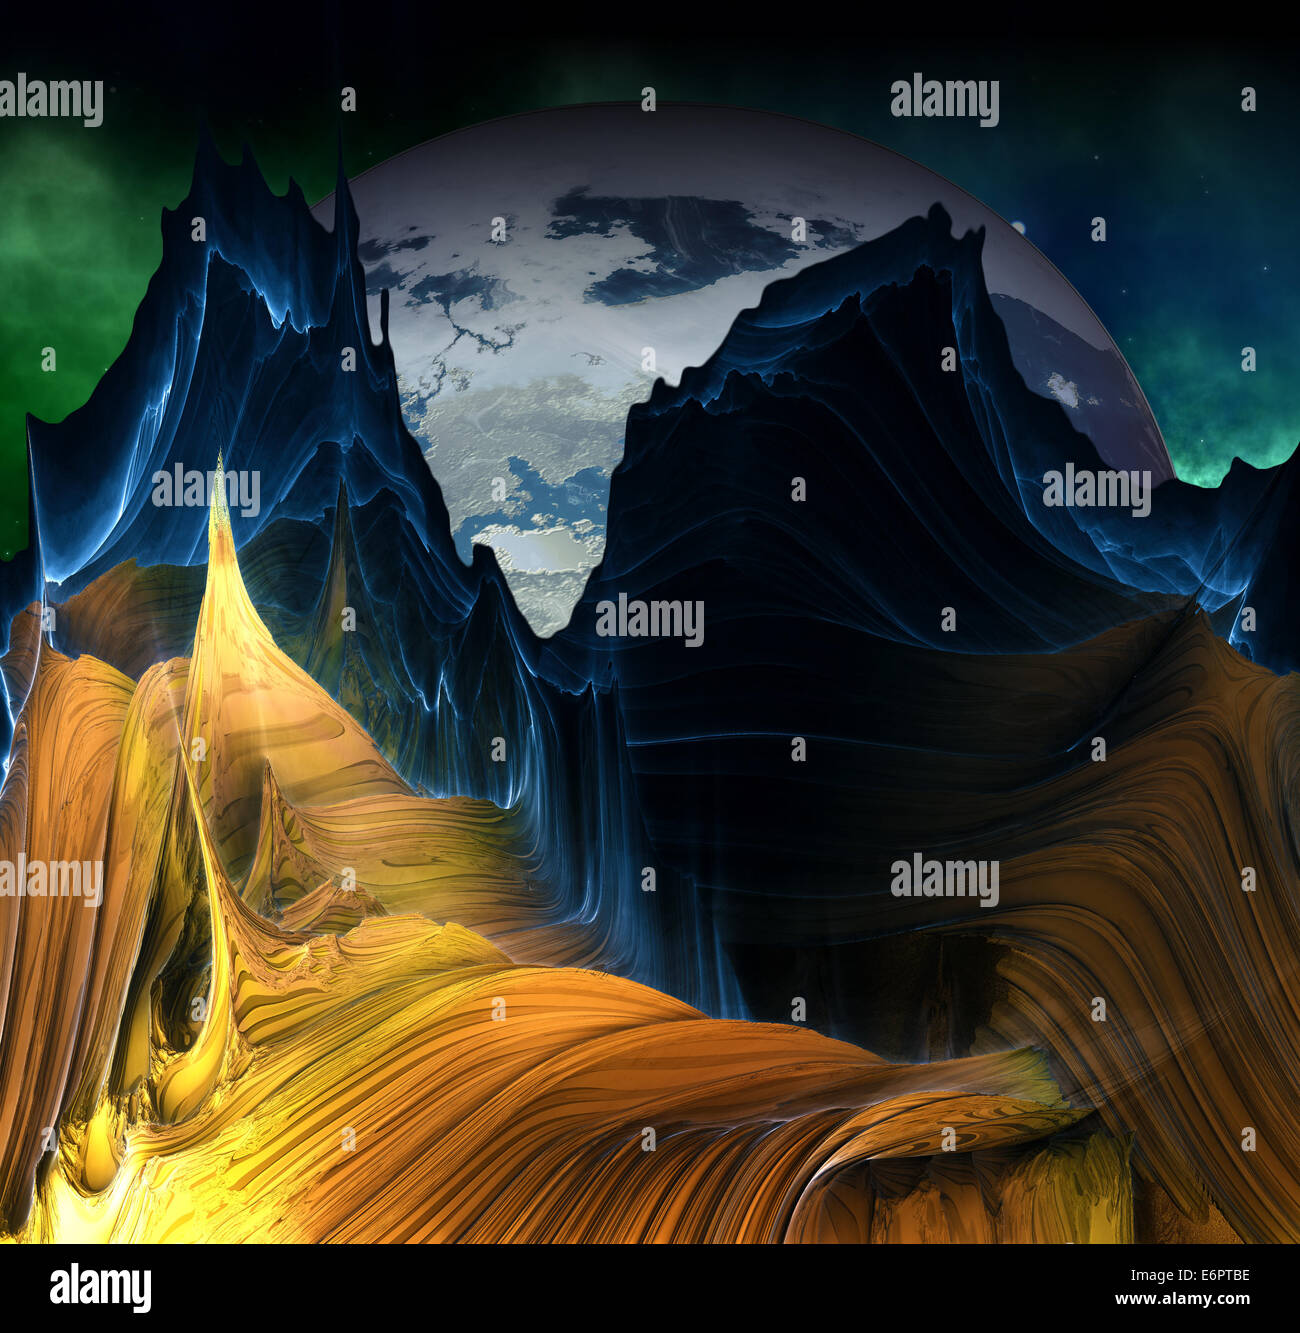 Alien mountains with space background and a big planet - Stock Image